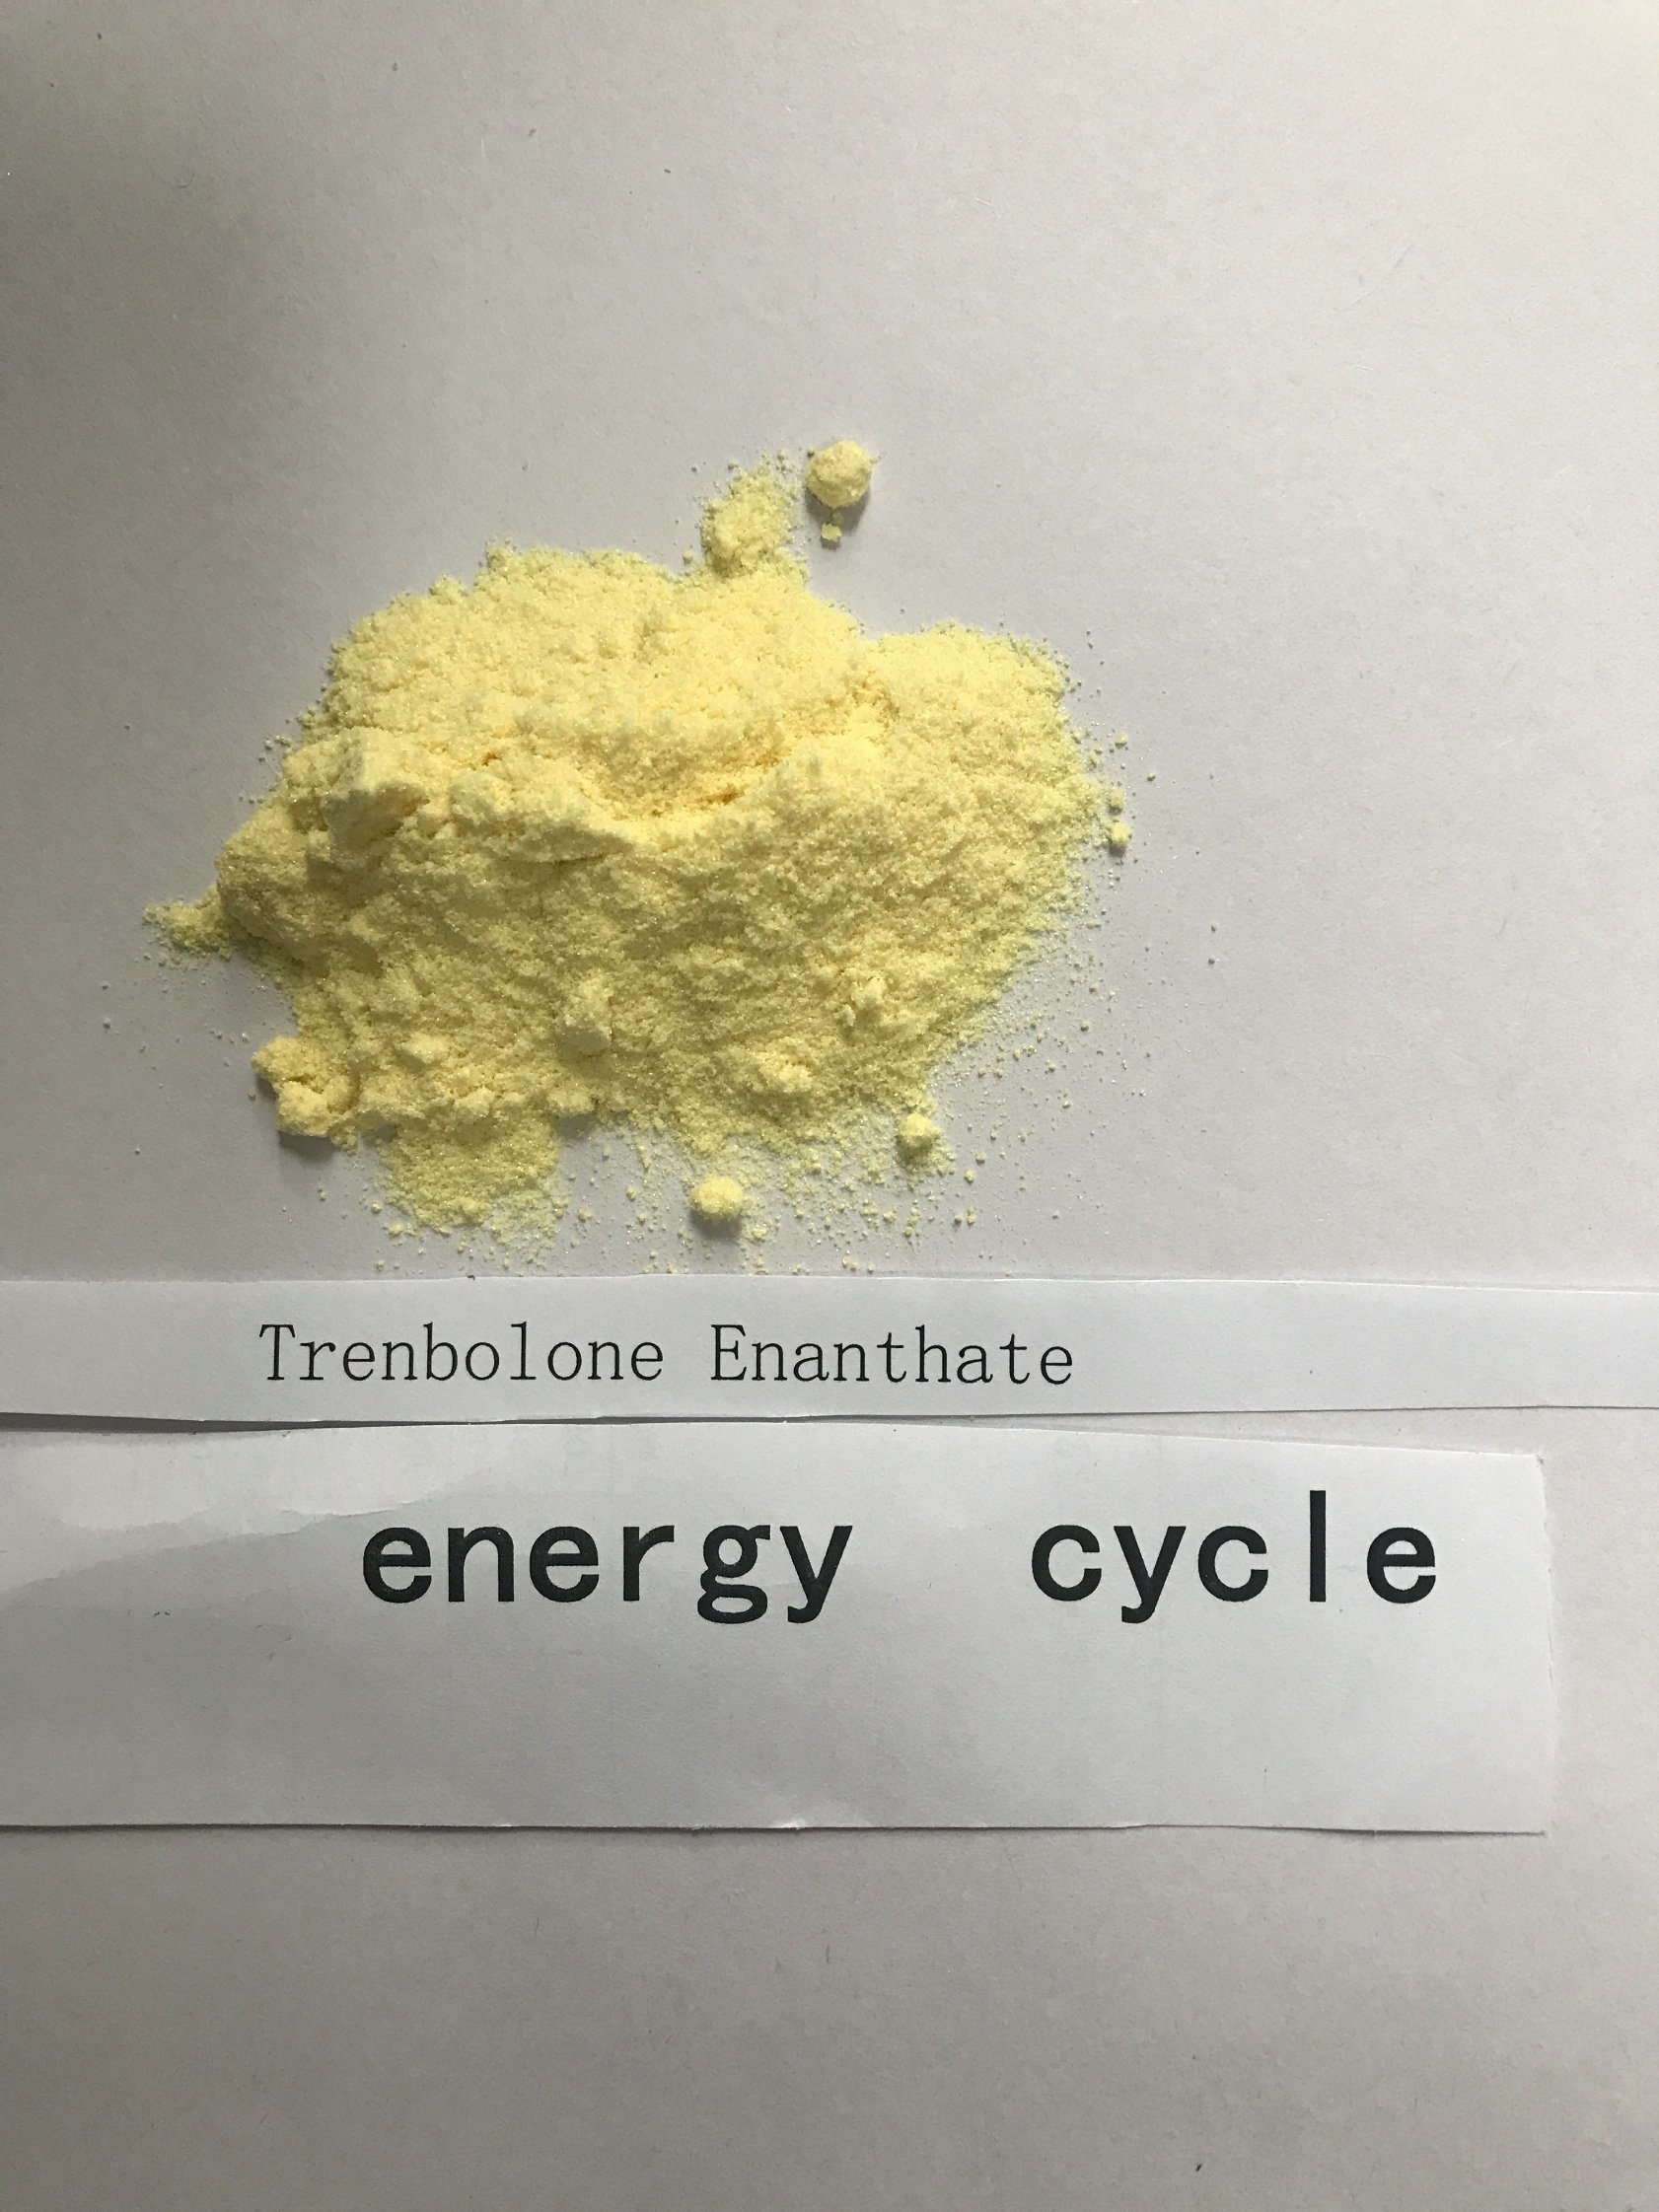 Raw Steroid Powder Parabolan/Trenbolone Enanthate for Muscle Growth